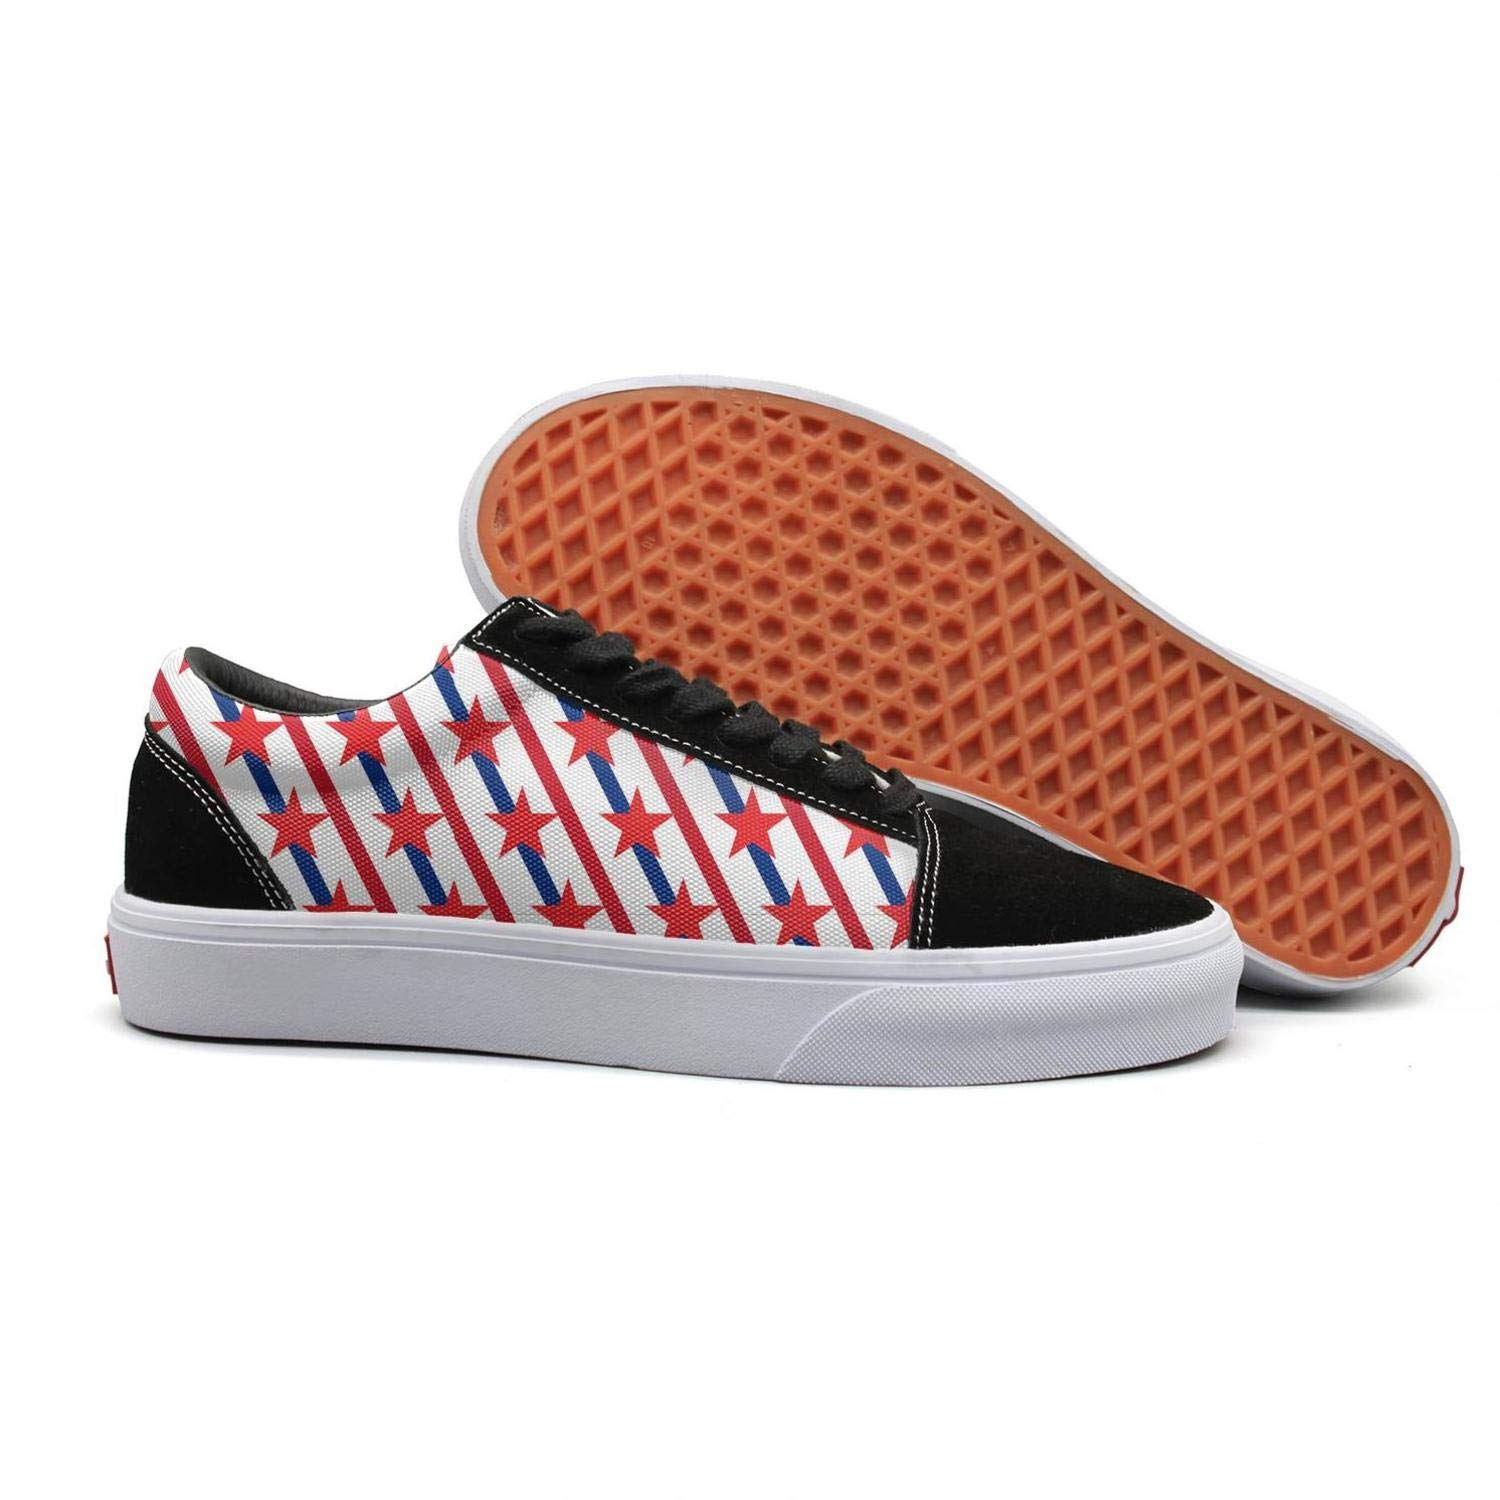 4th Of July16 8.5 B(M) US KSOWE3KD Woman Man Rubber Boat shoes Happy 4th of July American Flag independent4 Loafers Unisex Foam shoes